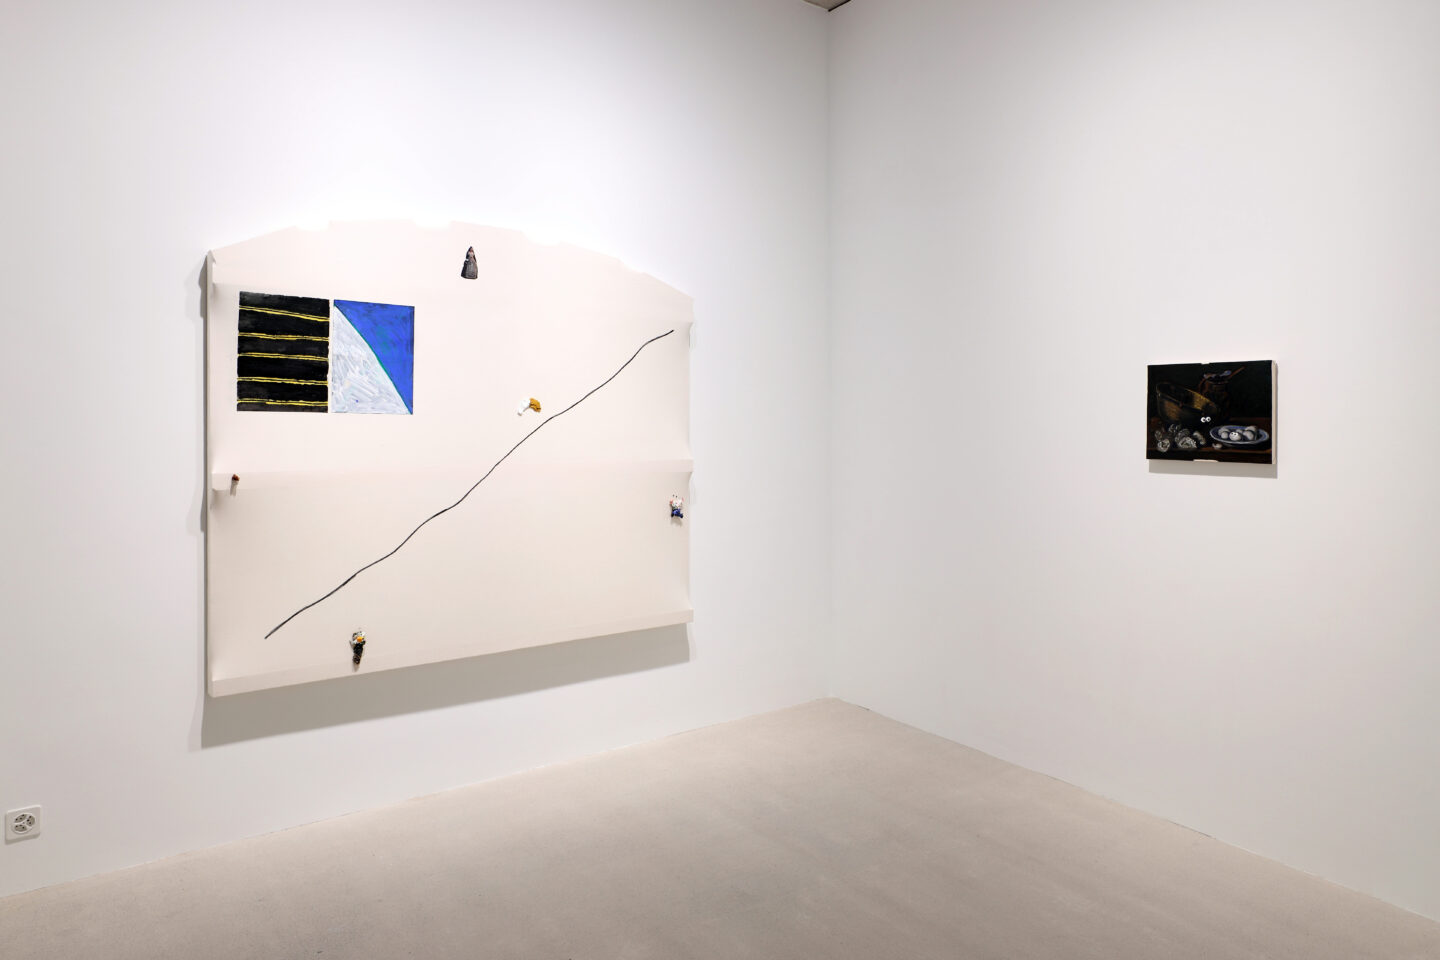 Exhibition View Charles Benjamin Soloshow «Not Again; view on Charles Benjamin, La Menina, 2020 (left) and If you think this is bad you should see the others (5), 2020» at Windhager von Kaenel, Zurich, 2020 / Courtesy: the artist and Windhager von Kaenel